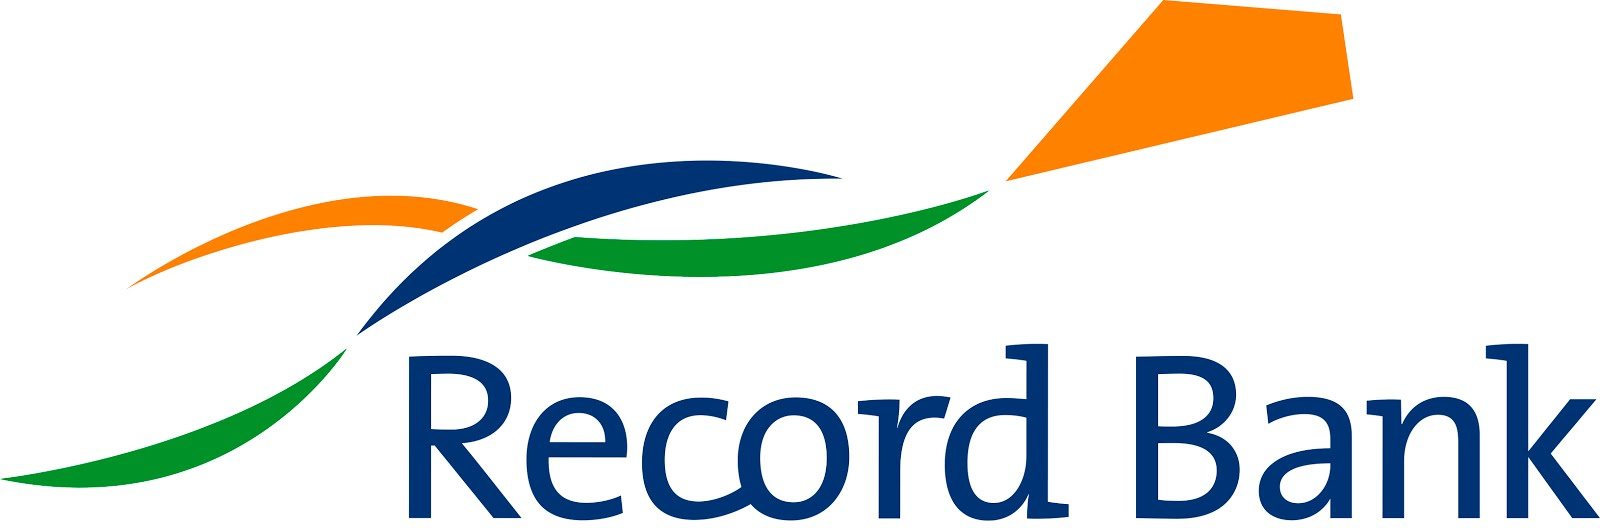 RecordBank Services